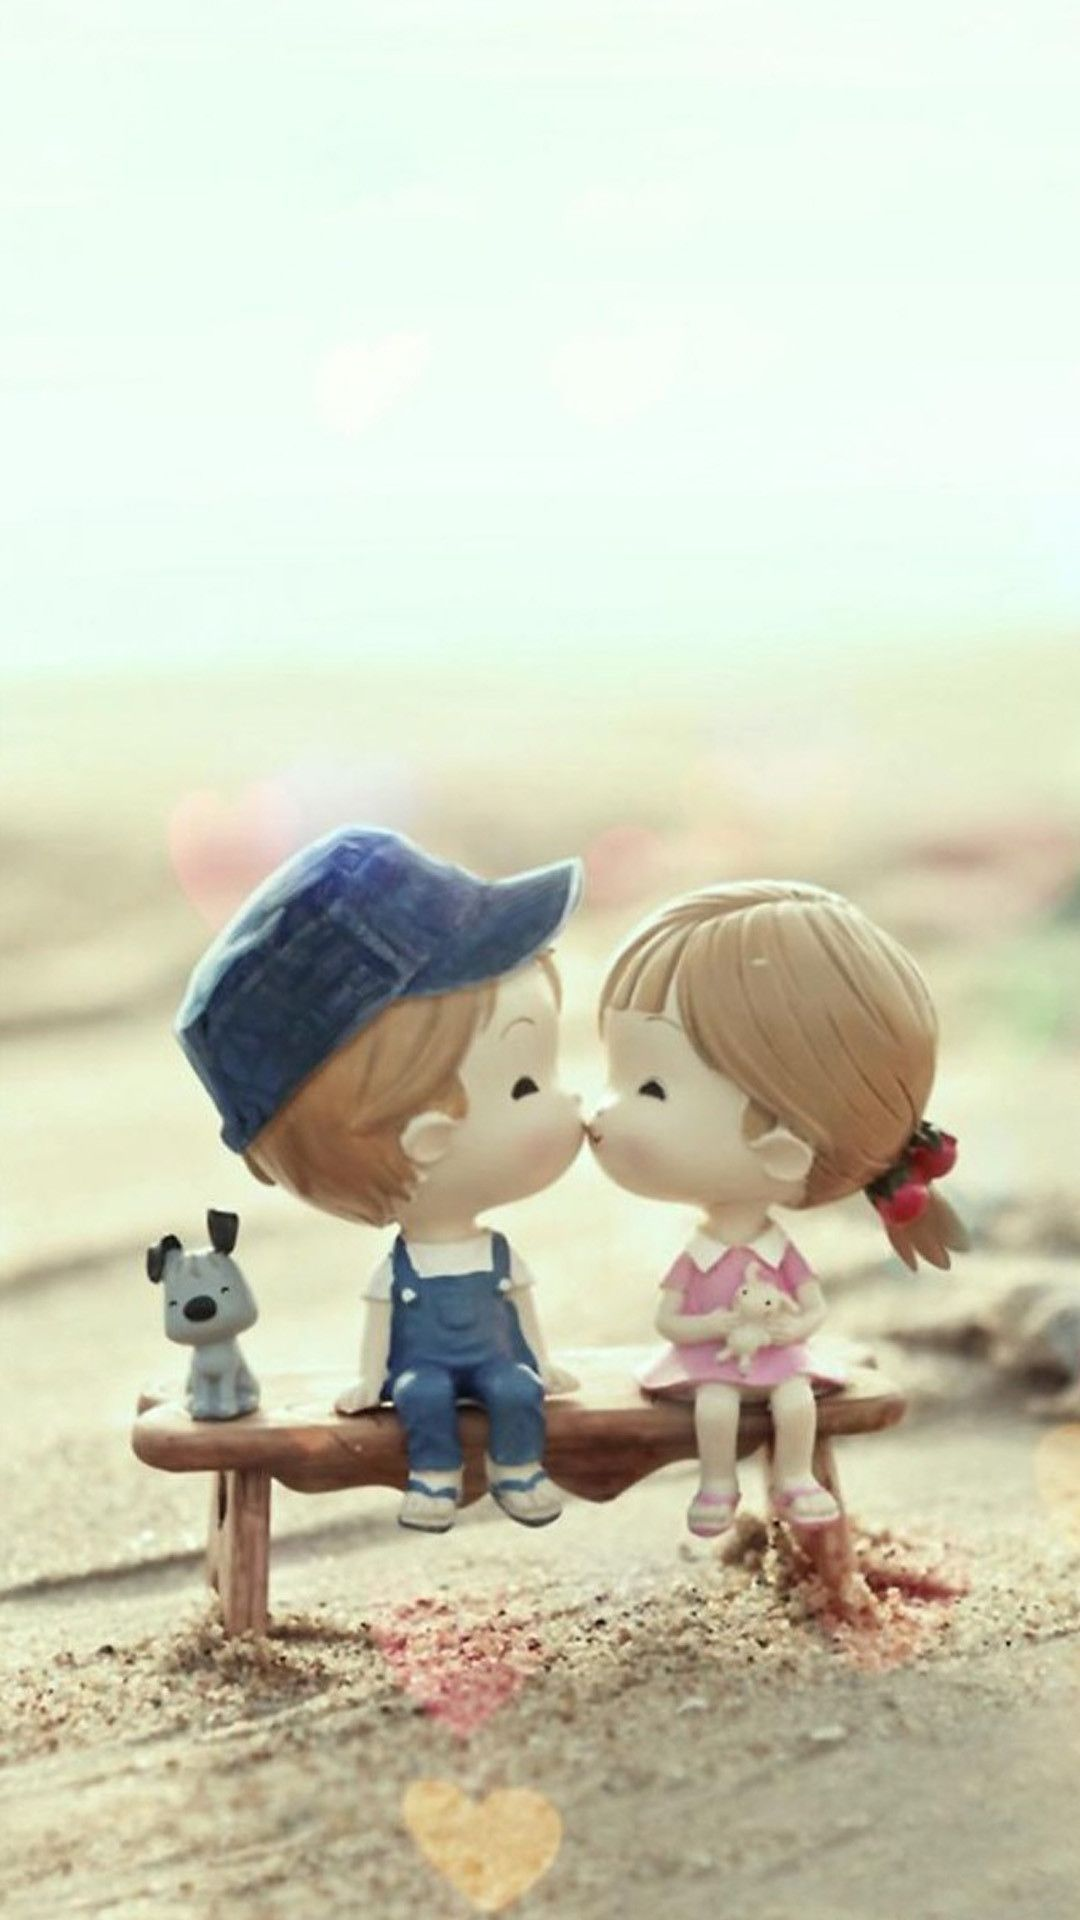 Get Anime Couple Wallpaper Hd Images In 2021 Cute Couple Wallpaper Love Couple Wallpaper Cute Cartoon Couple Wallpaper